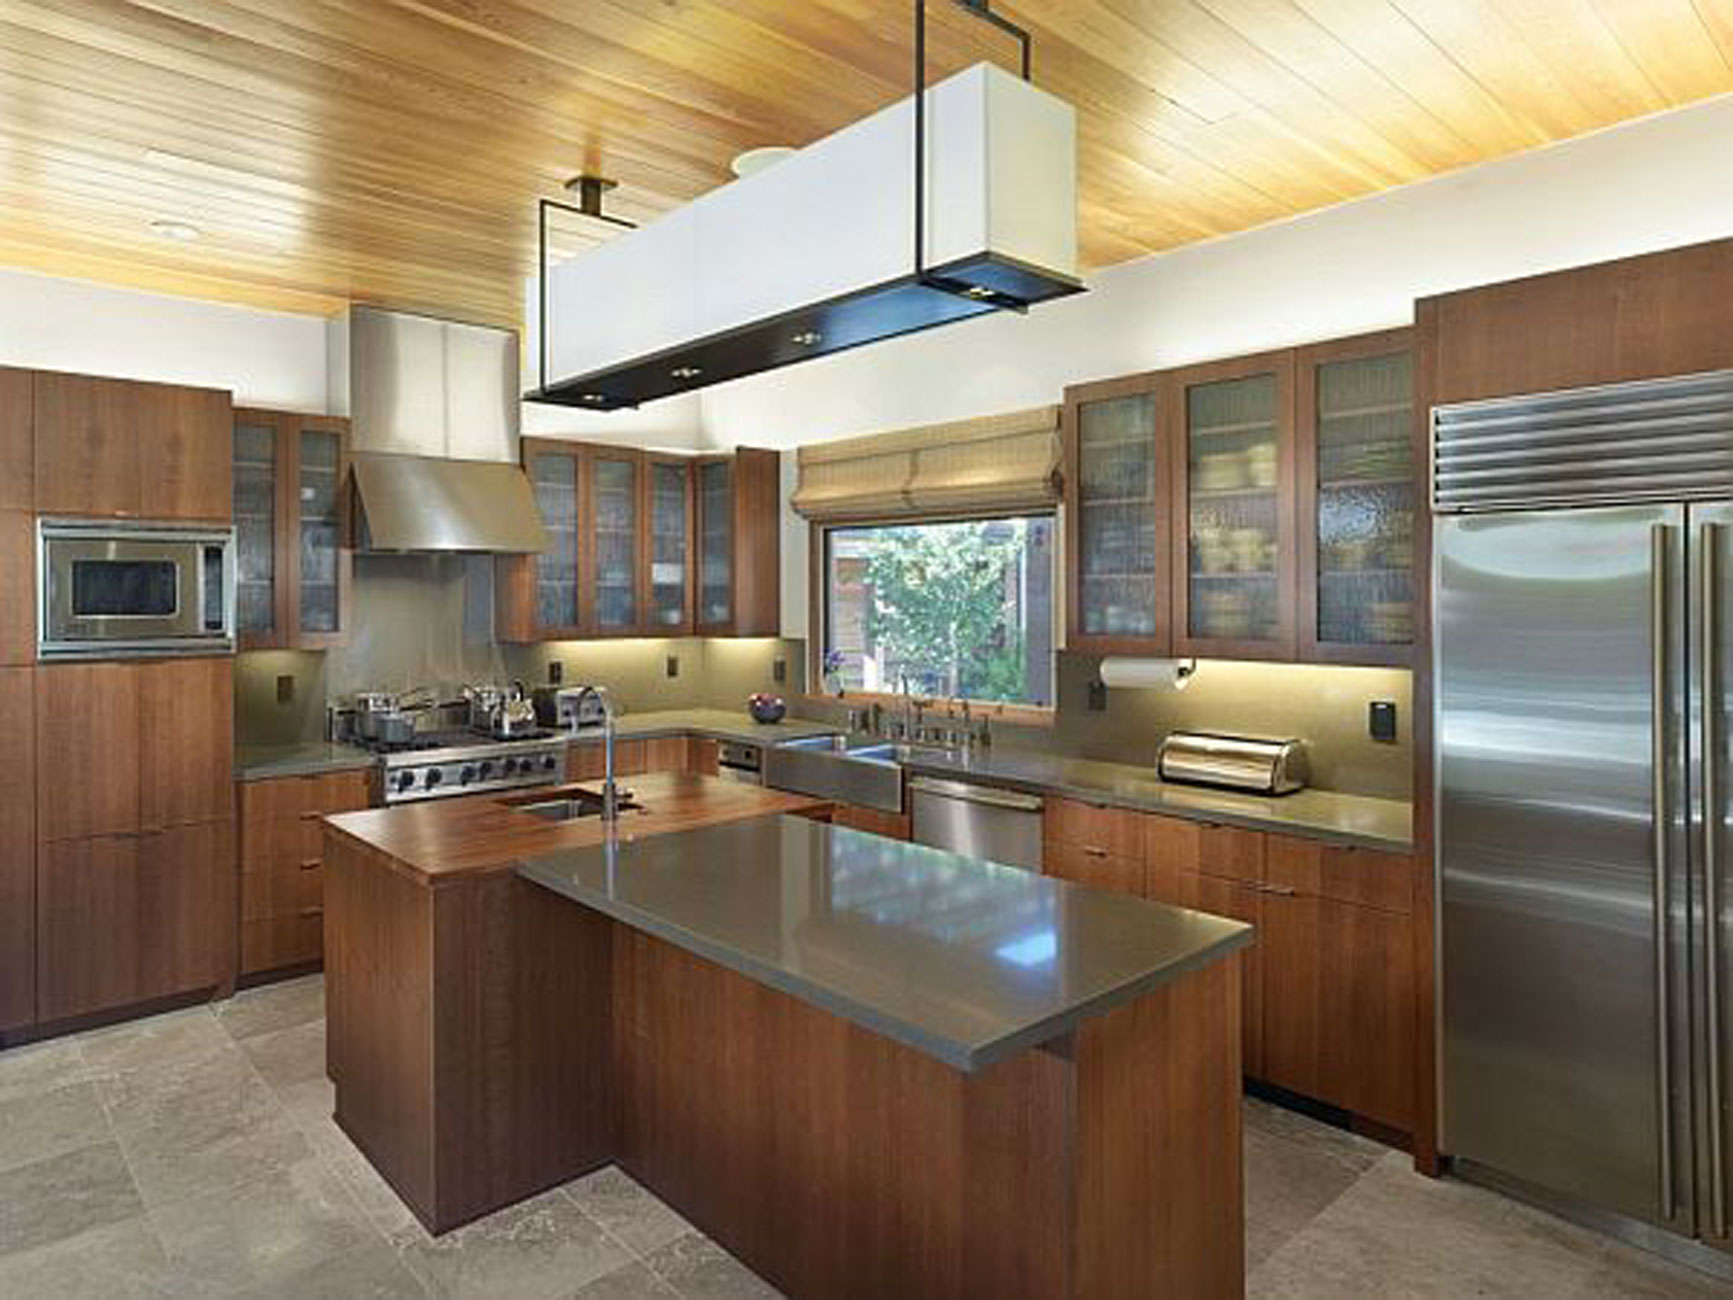 Renovated road house with contemporary style kitchen